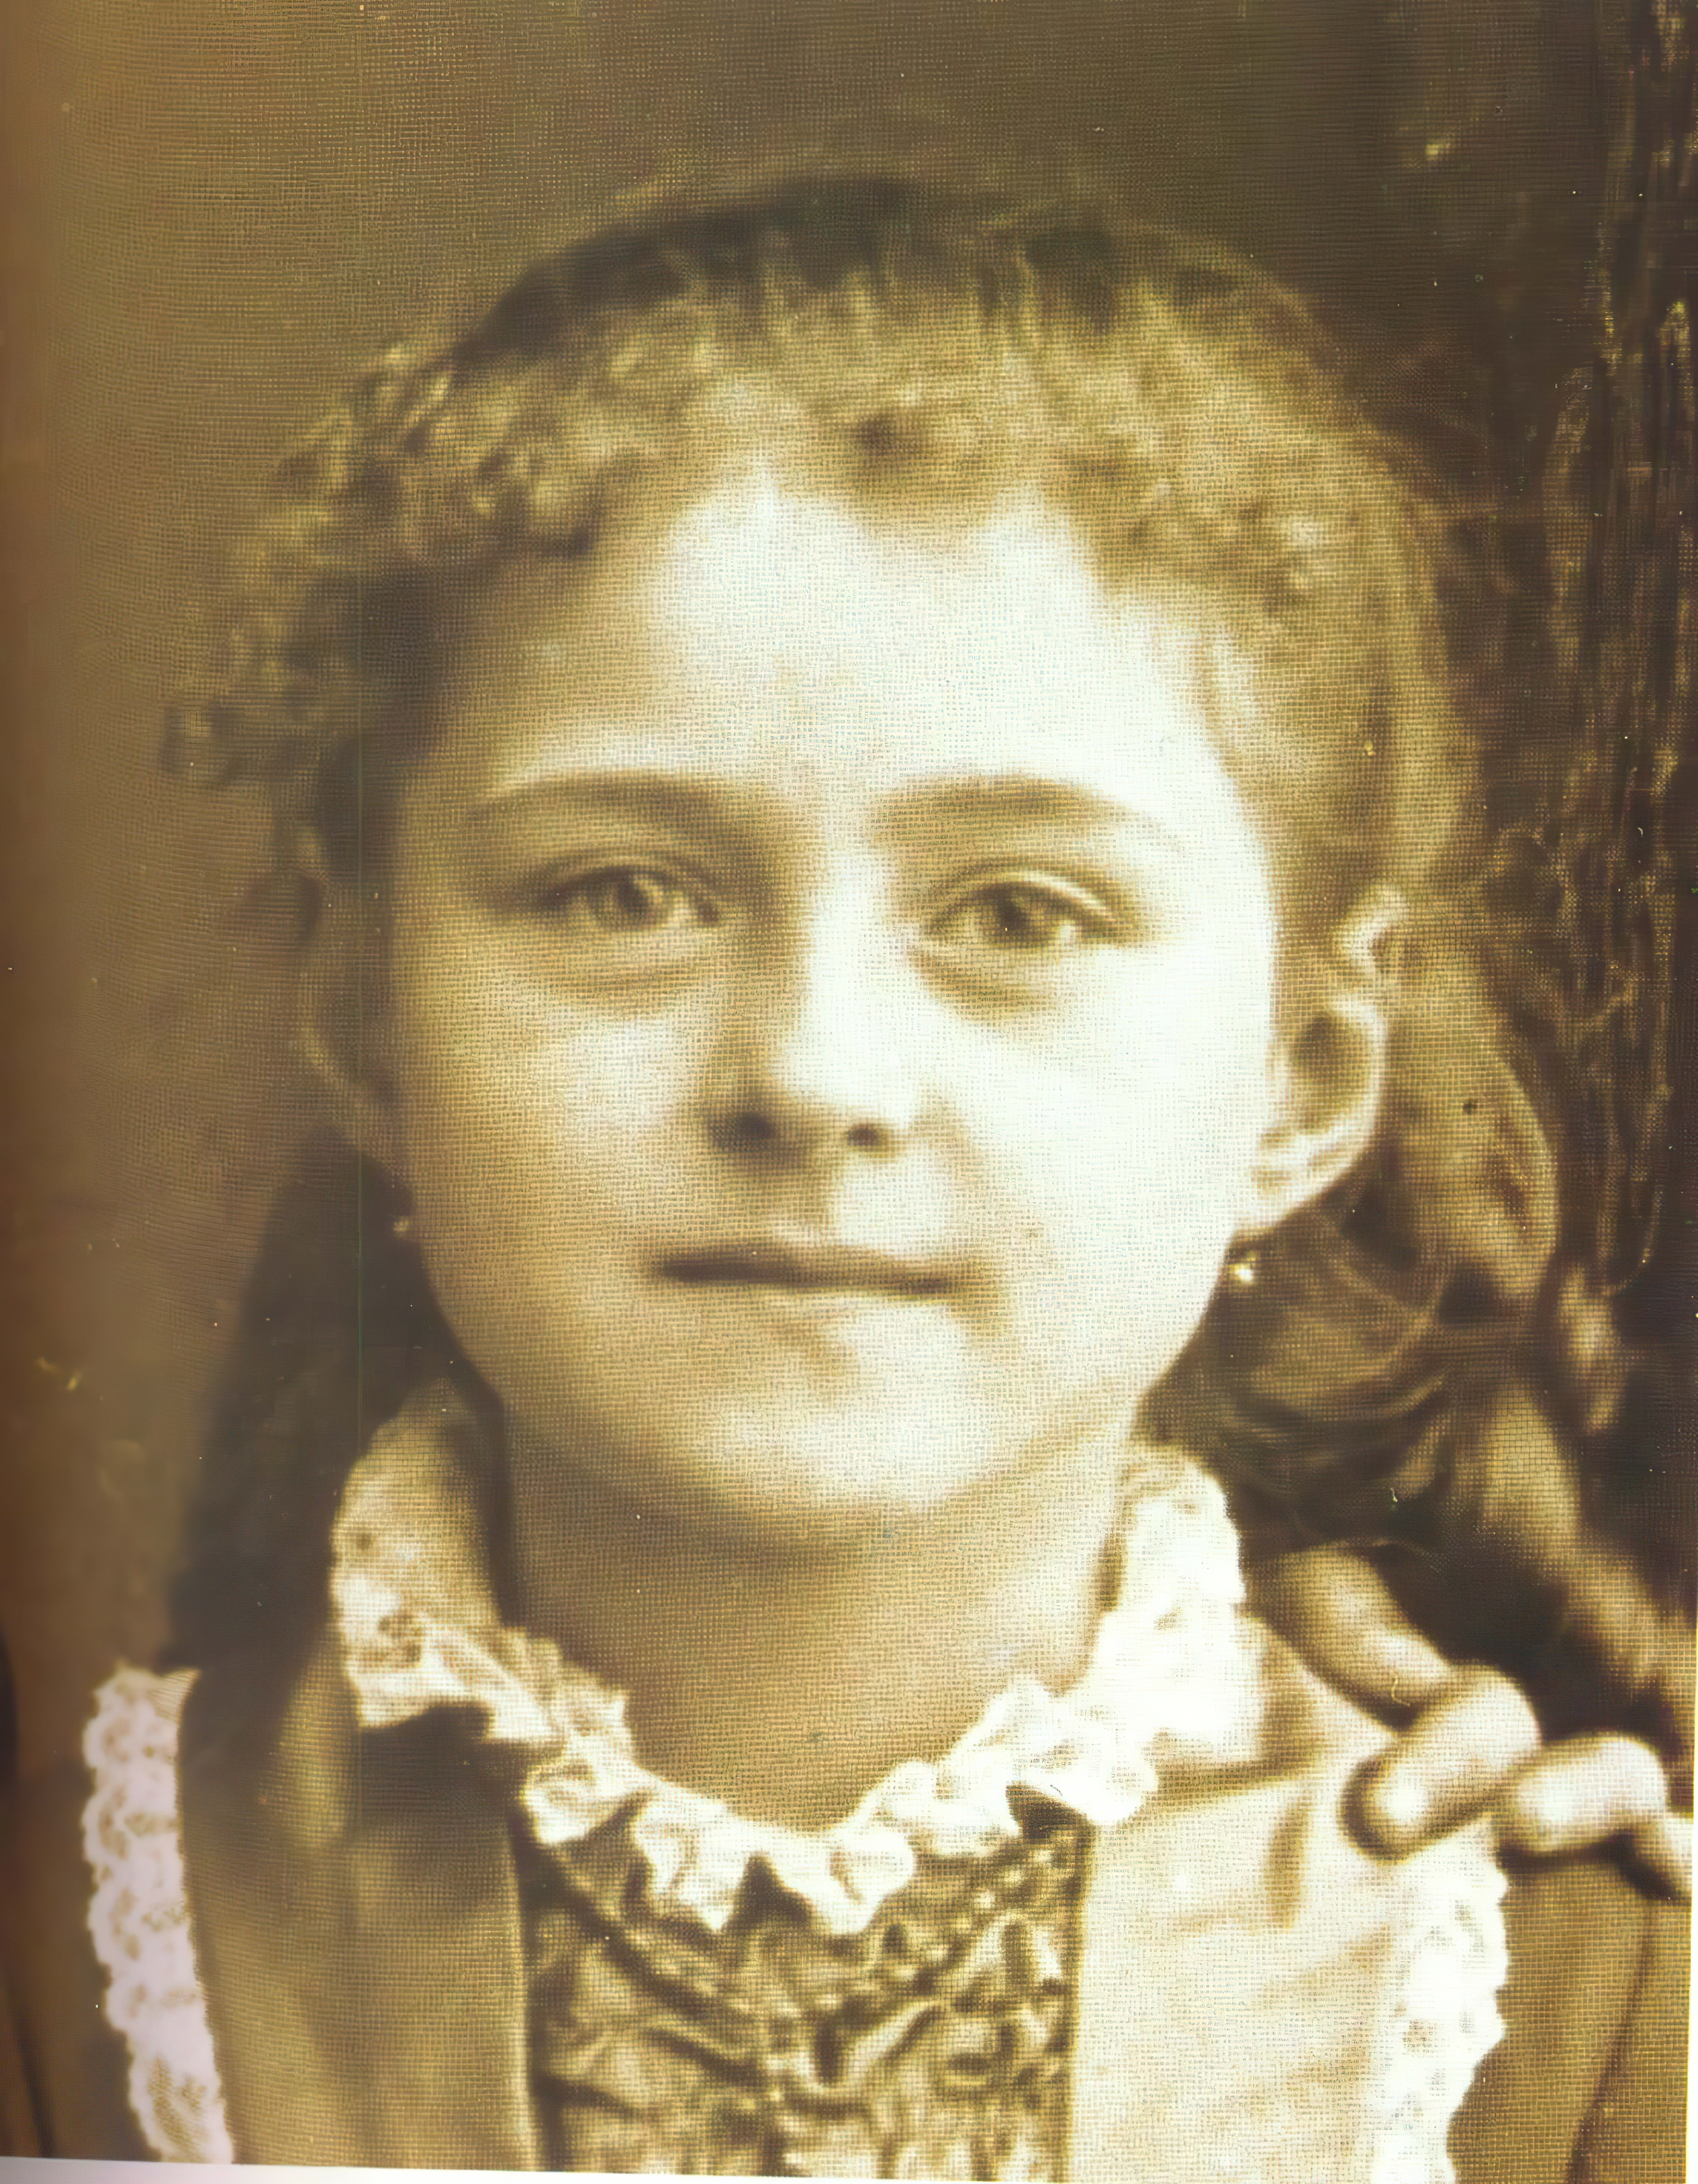 St. Thérèse of Lisieux at 8 years old in 1881